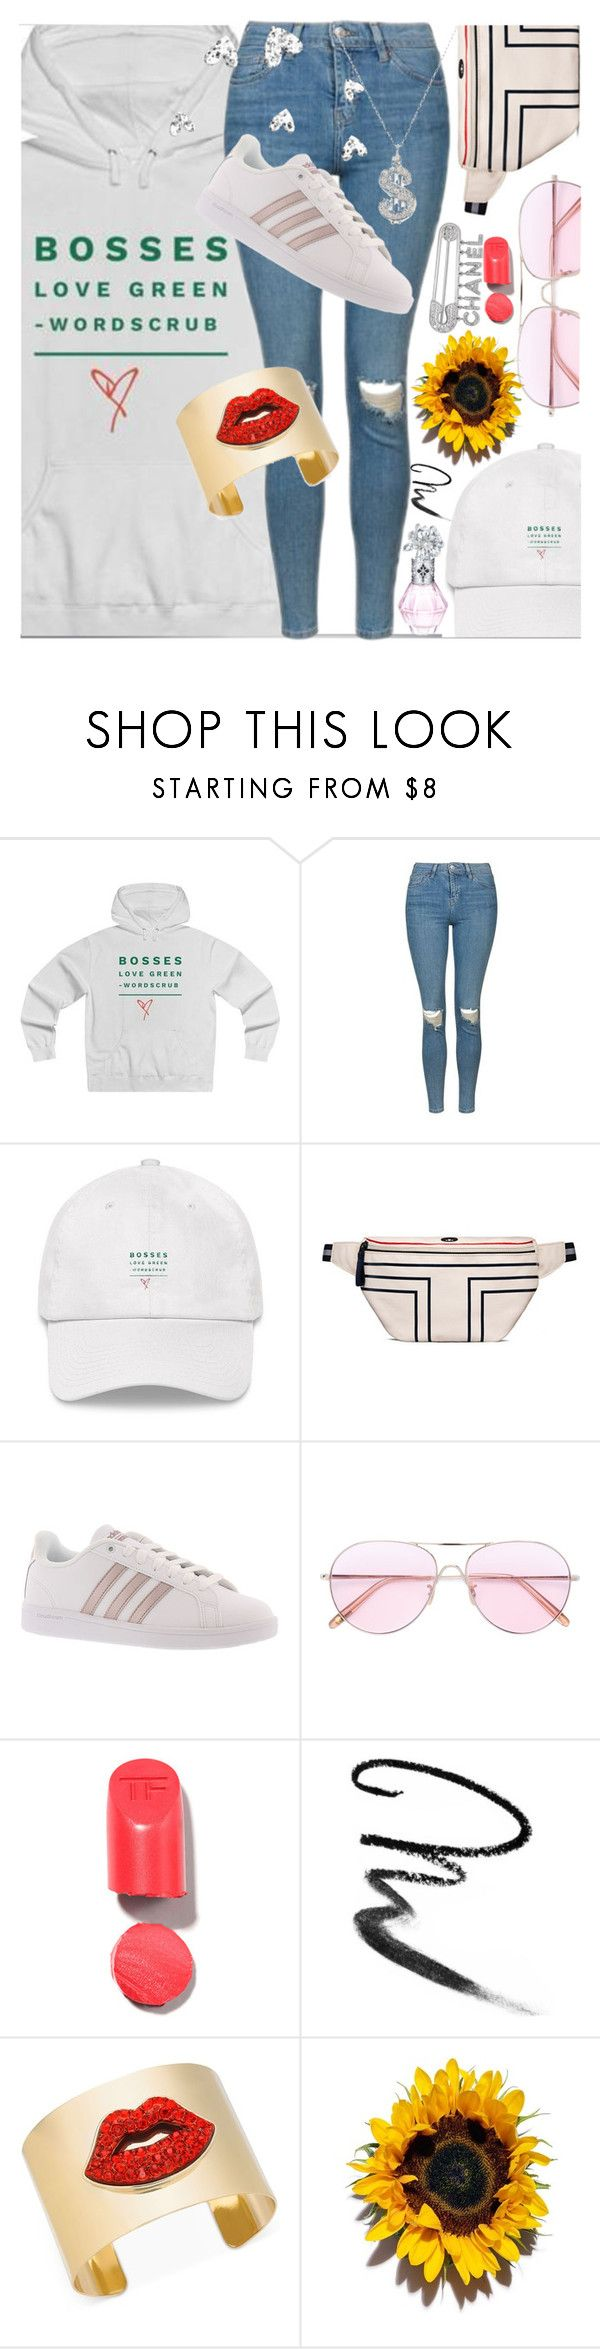 """""""Bosses Love Green!"""" by shop77spark ❤ liked on Polyvore featuring Topshop, adidas, Oliver Peoples, Maybelline, Thalia Sodi, Chanel, Sydney Evan, boss, Hoodies and polyvoreeditorial"""